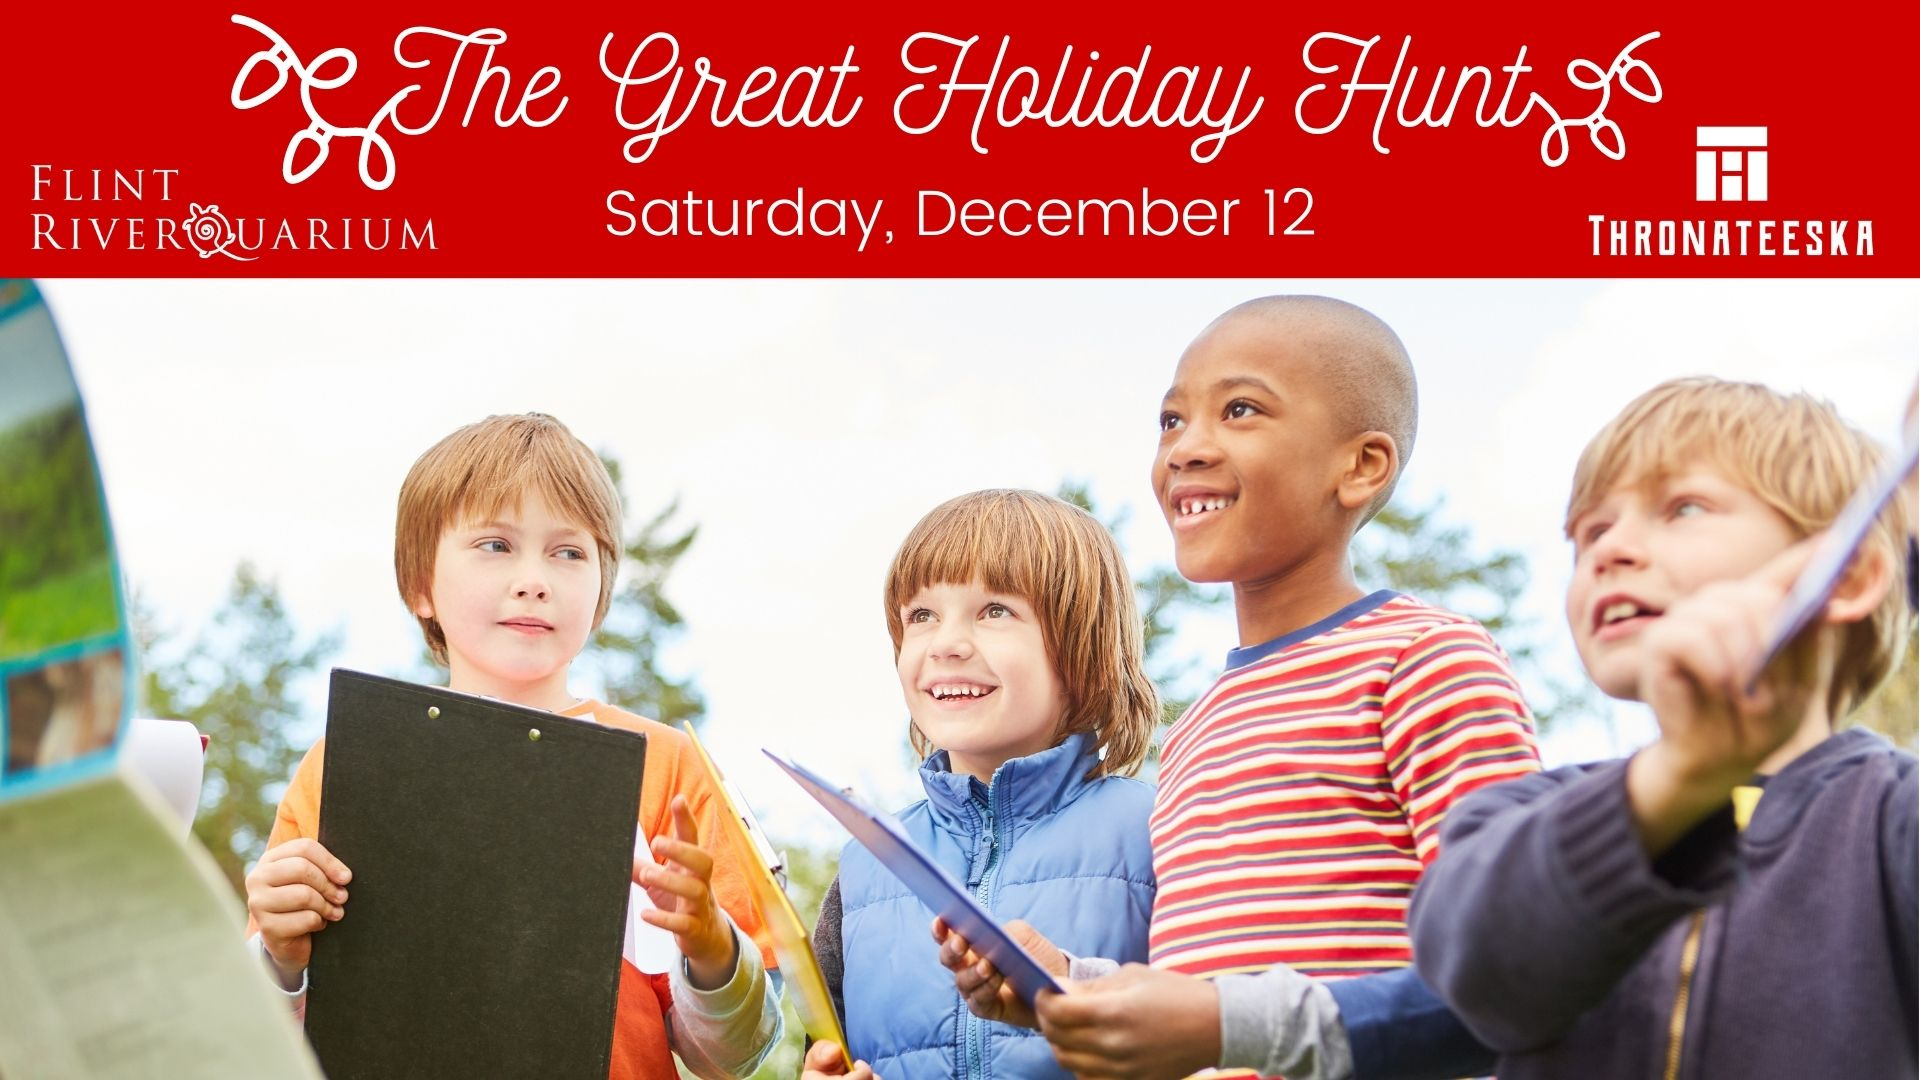 The Great Holiday Hunt